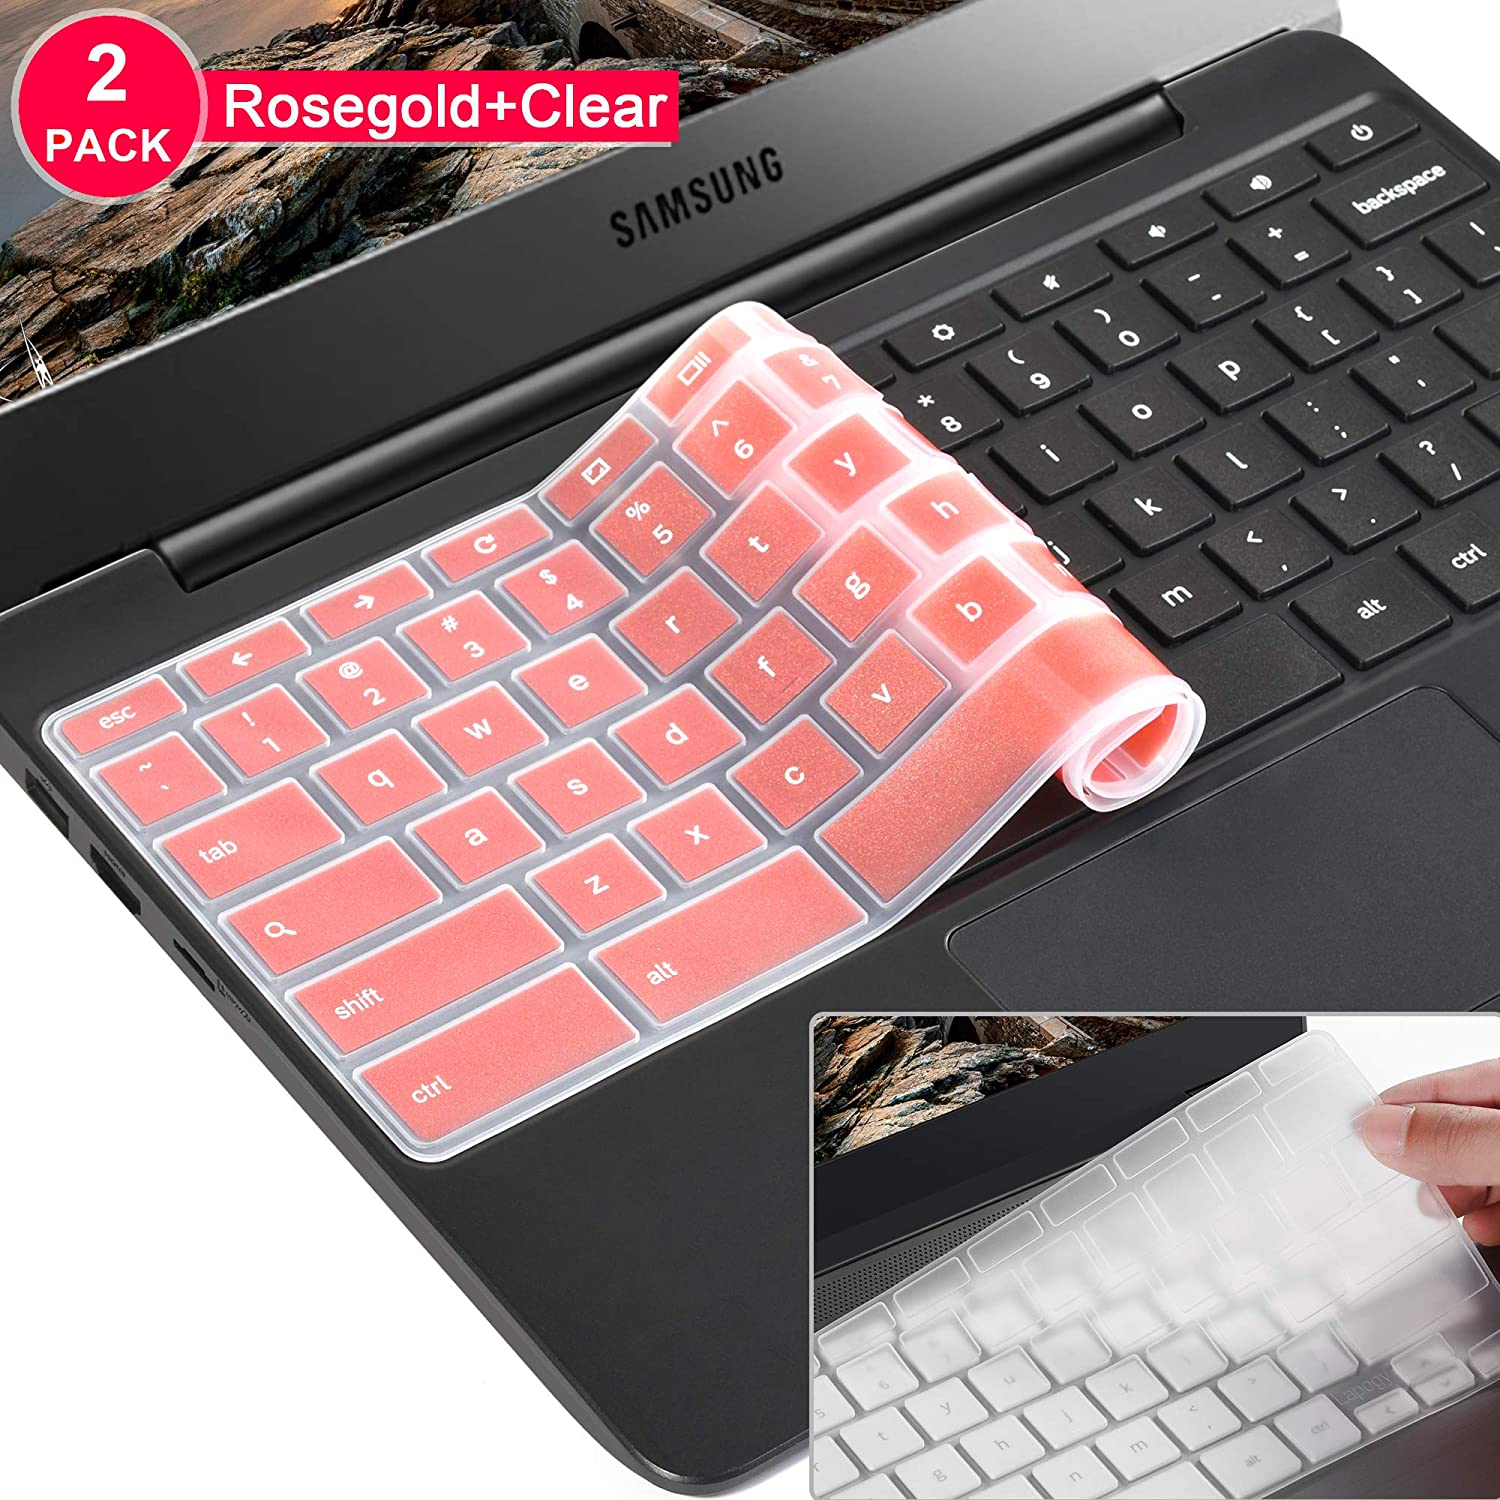 [2 Pack]Samsung chromebook 4 keyboard cover skin for Samsung Chromebook 11.6/15.6 inch Chromebook 2 XE500C12, Chromebook 3 XE500C13,Chromebook Plus V2 2-in-1 XE520QAB 12.2(Clear and pink)